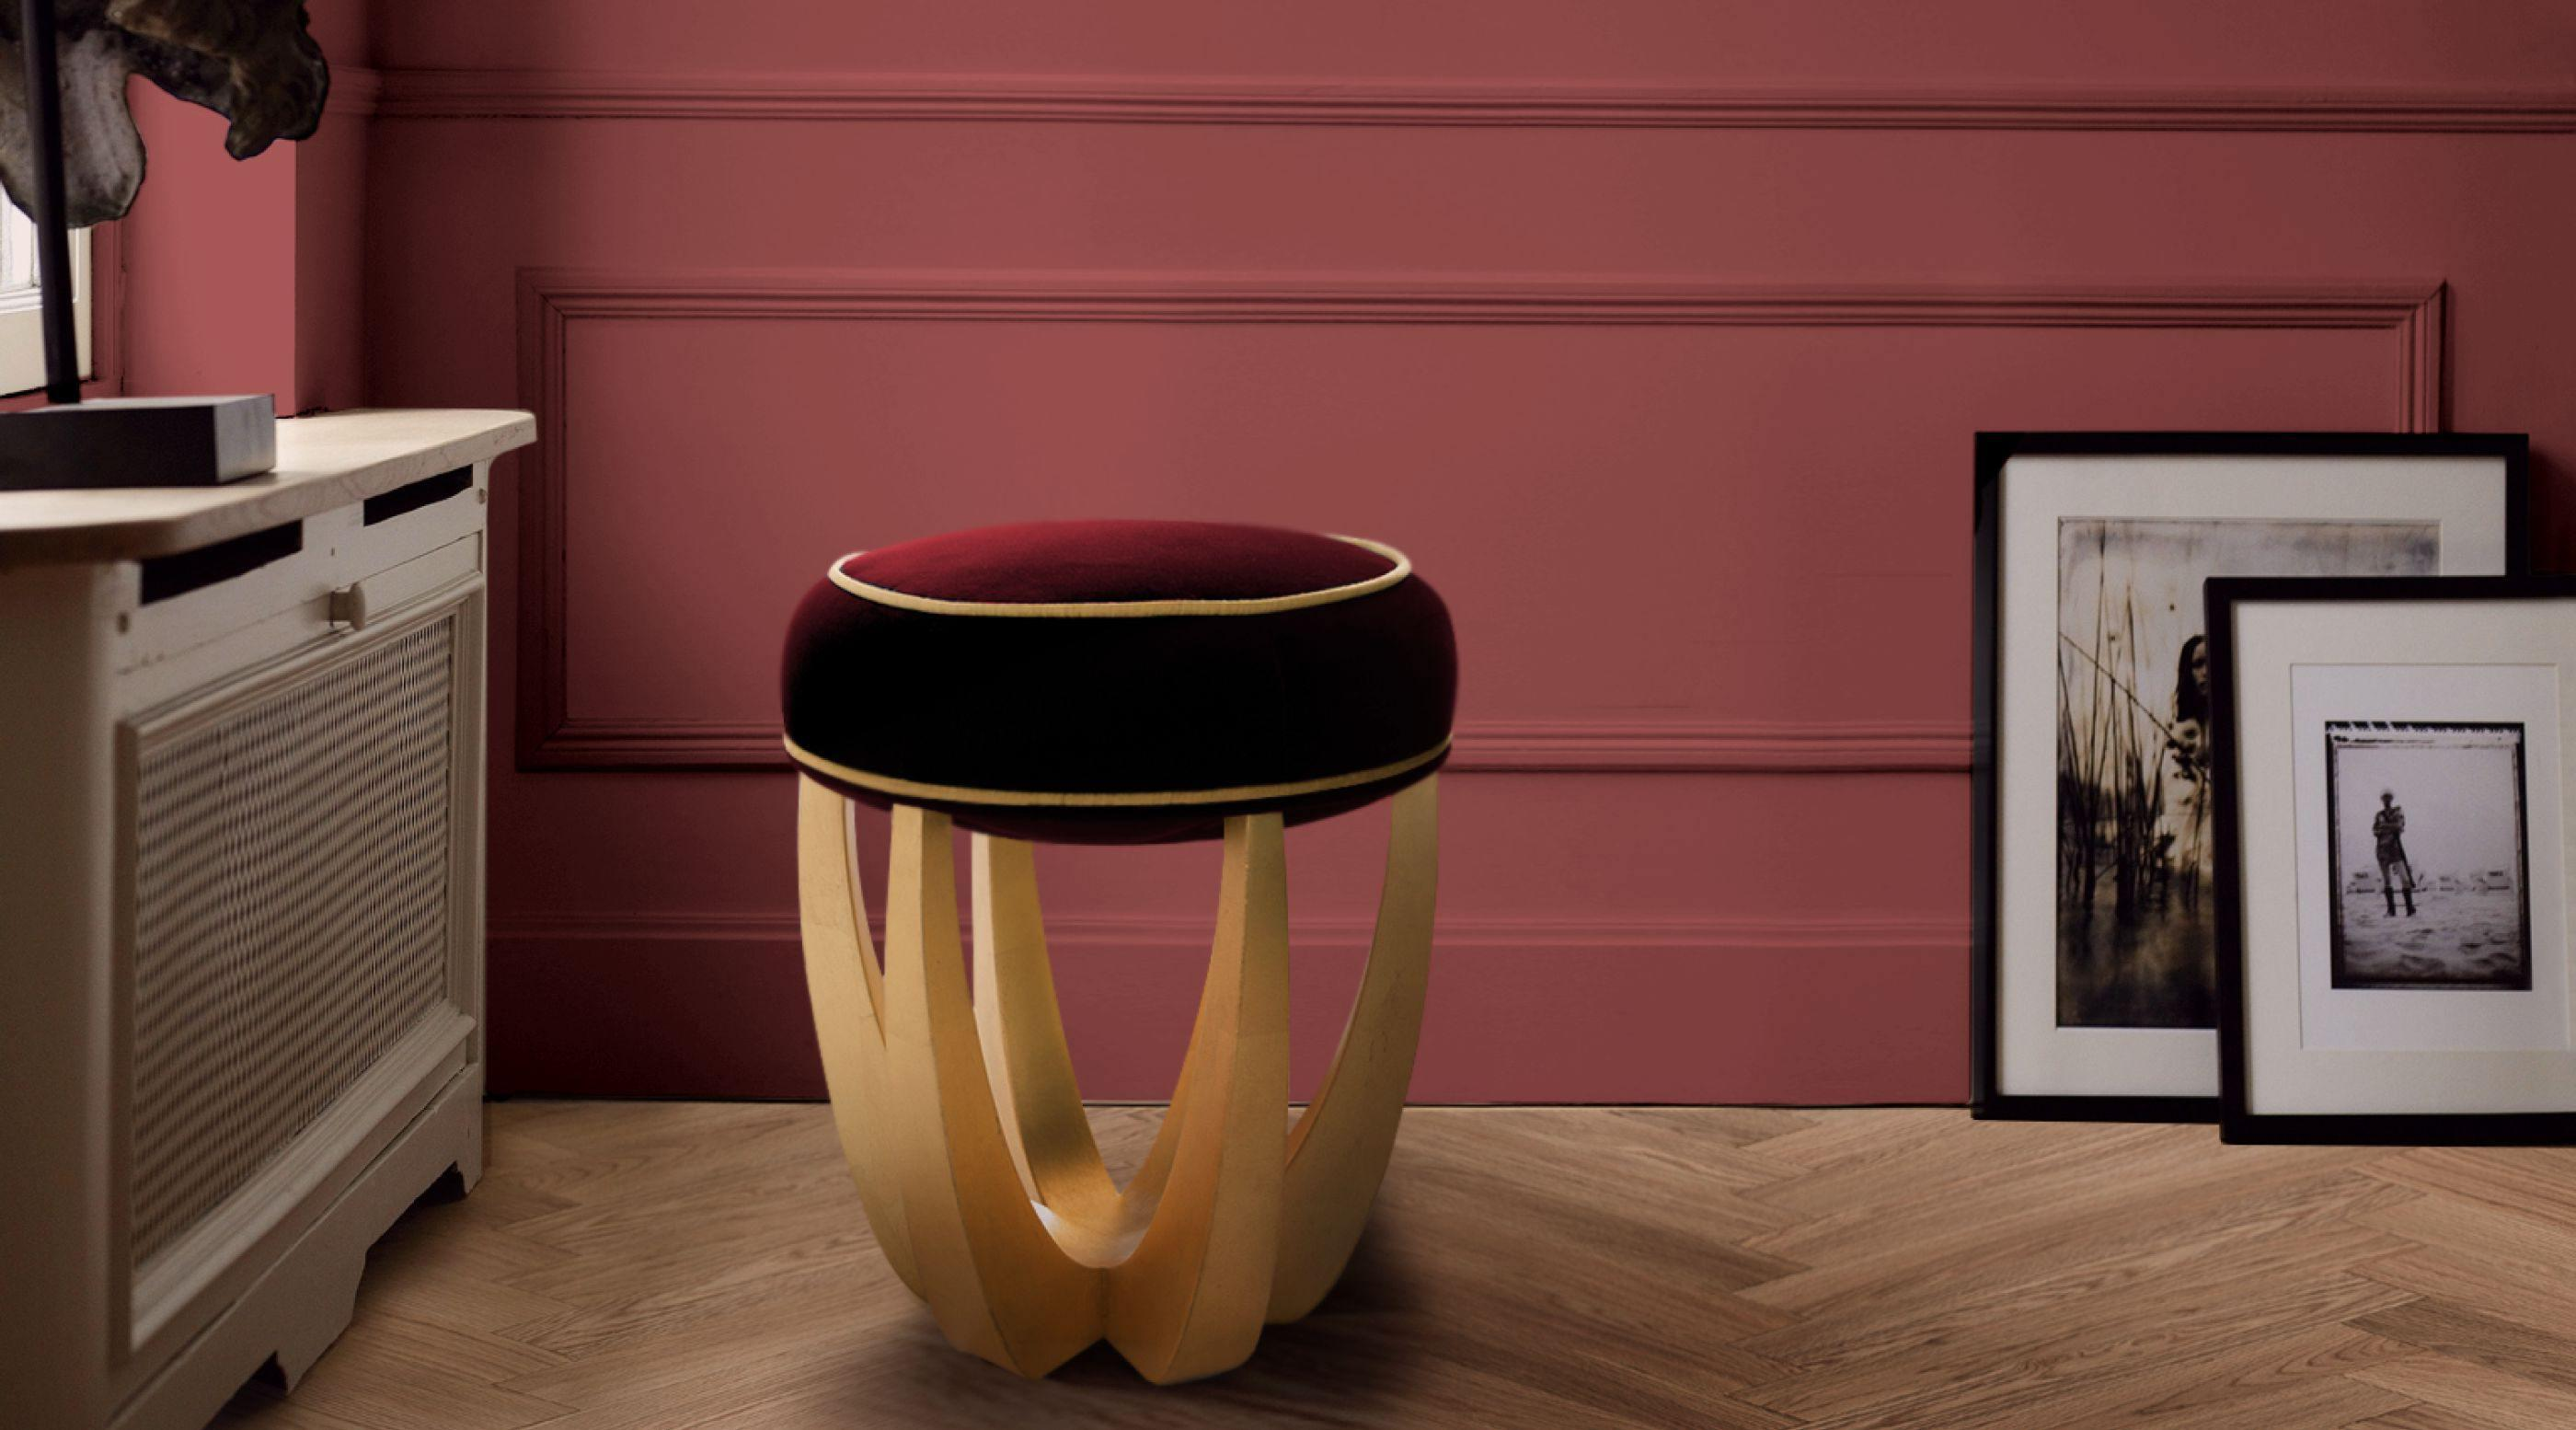 Betty Mid-Century Modern Stool in red and gold suede